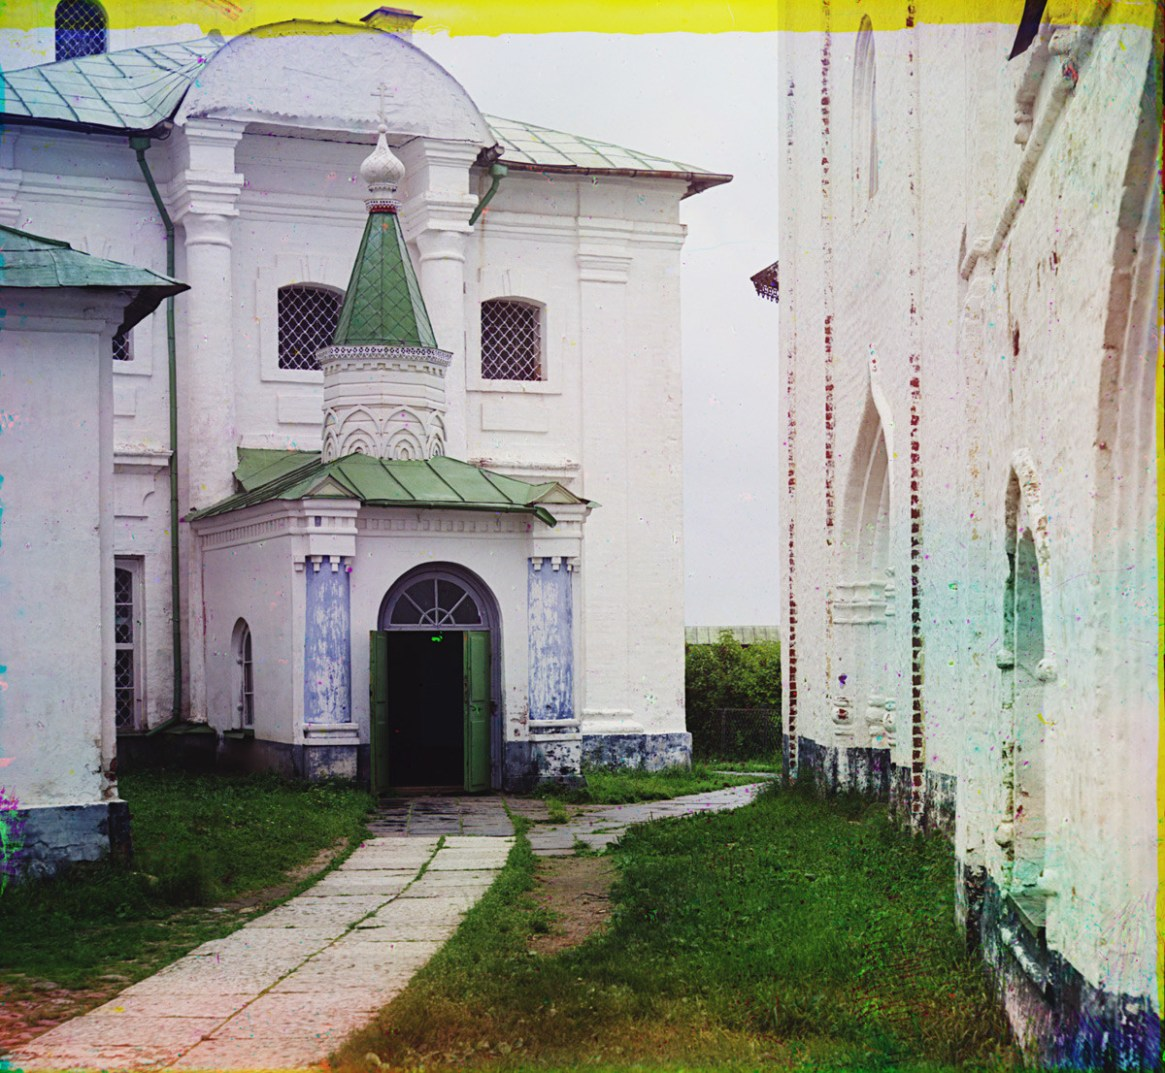 St. Kirill Belozersk Monastery. Church of St. Kirill Belozersk, west facade with main entrance. On right: north wall of Church of Archangel Gabriel. Summer 1909.